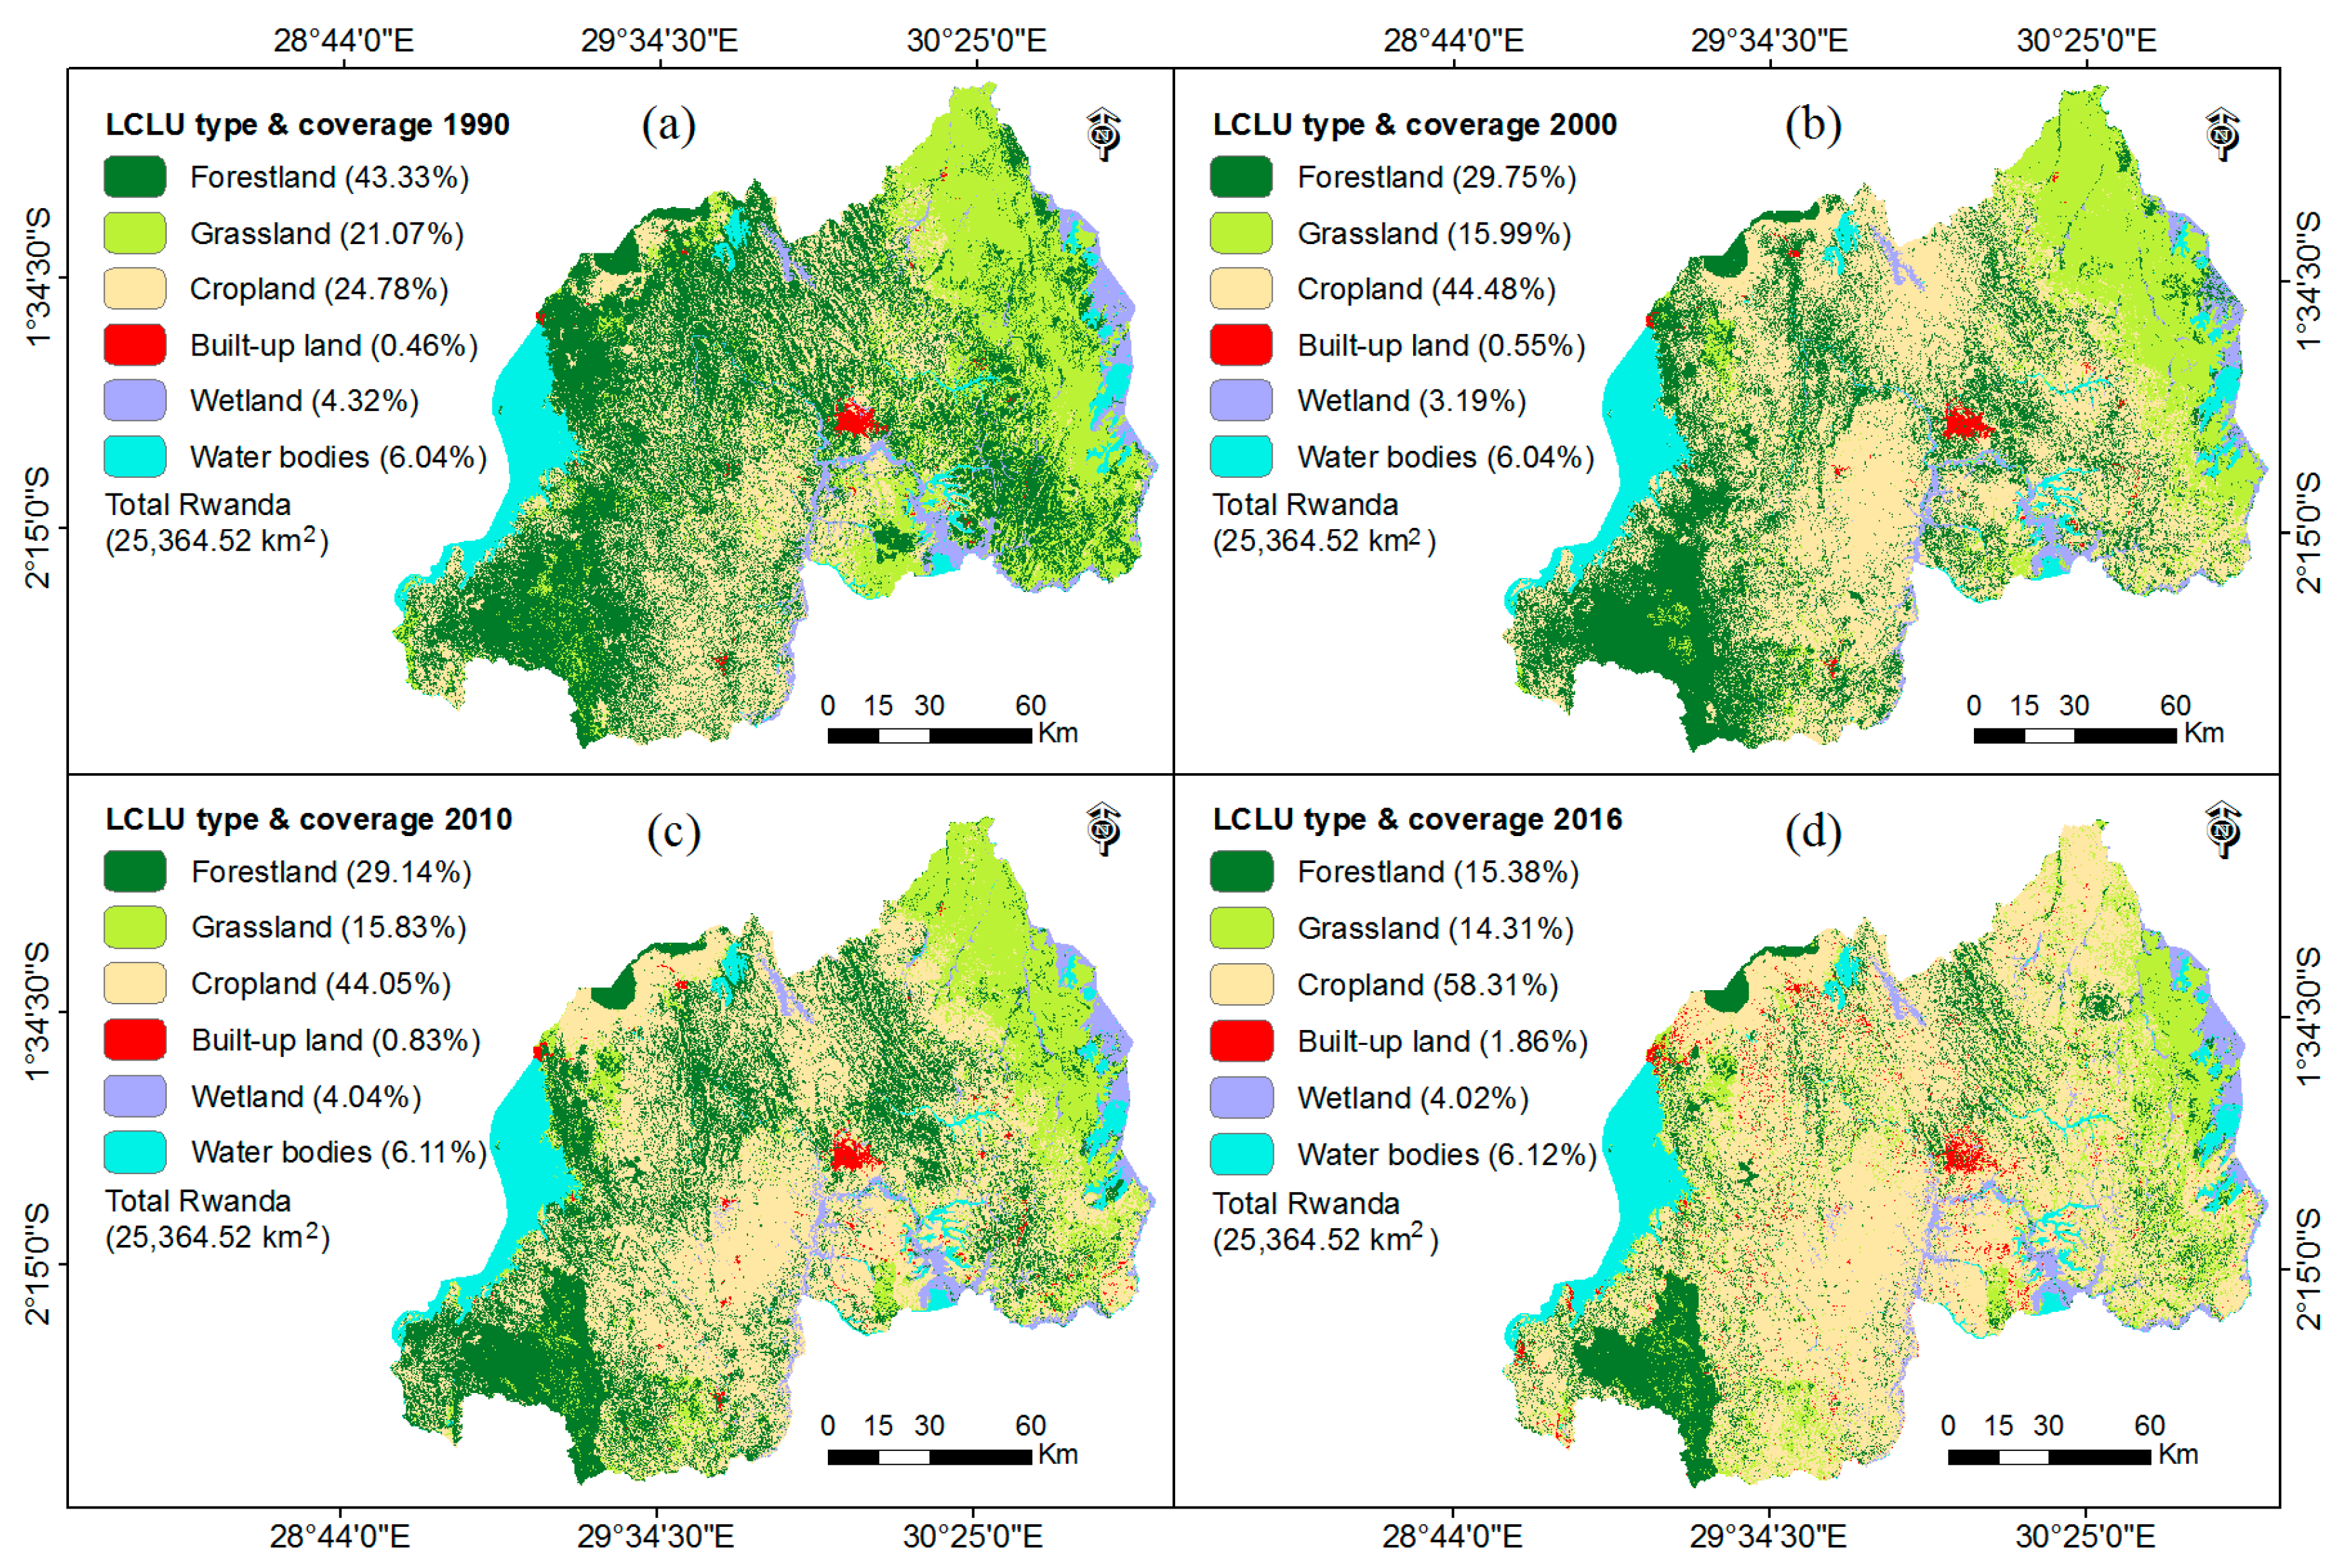 """types of land use in rwanda An assessment of land use planning in rwanda, august 2015 """"development planning shall be integrated, participatory, evidence-based, and focused on addressing the priority needs of citizens, taking into consideration the overall national development vision and constraints of the resource envelope."""